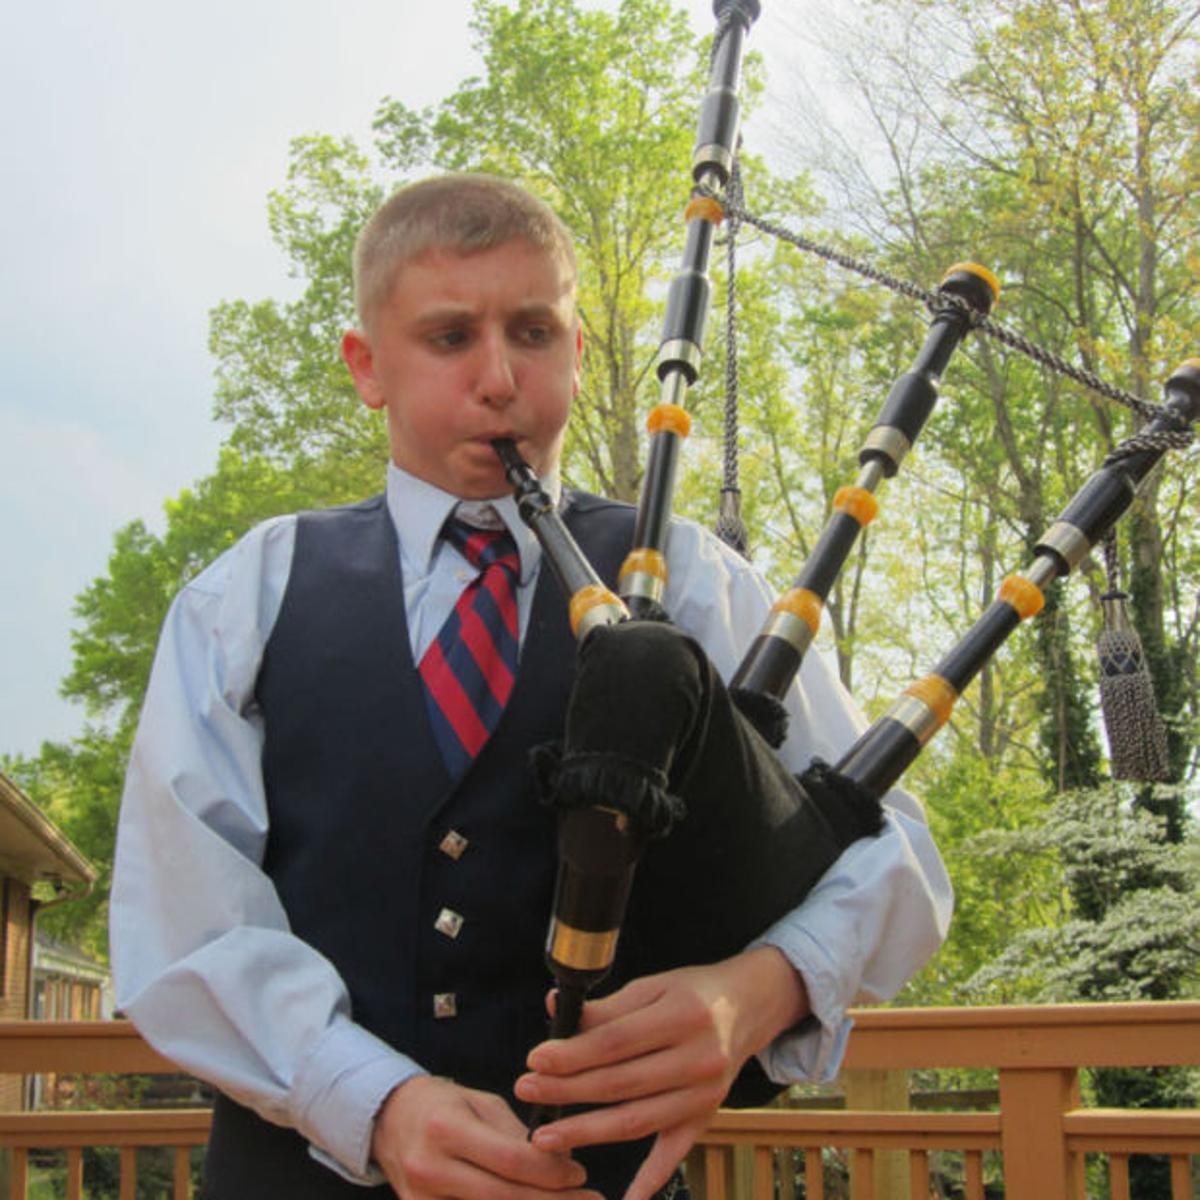 Bagpipe playing 13 year old part of musical family